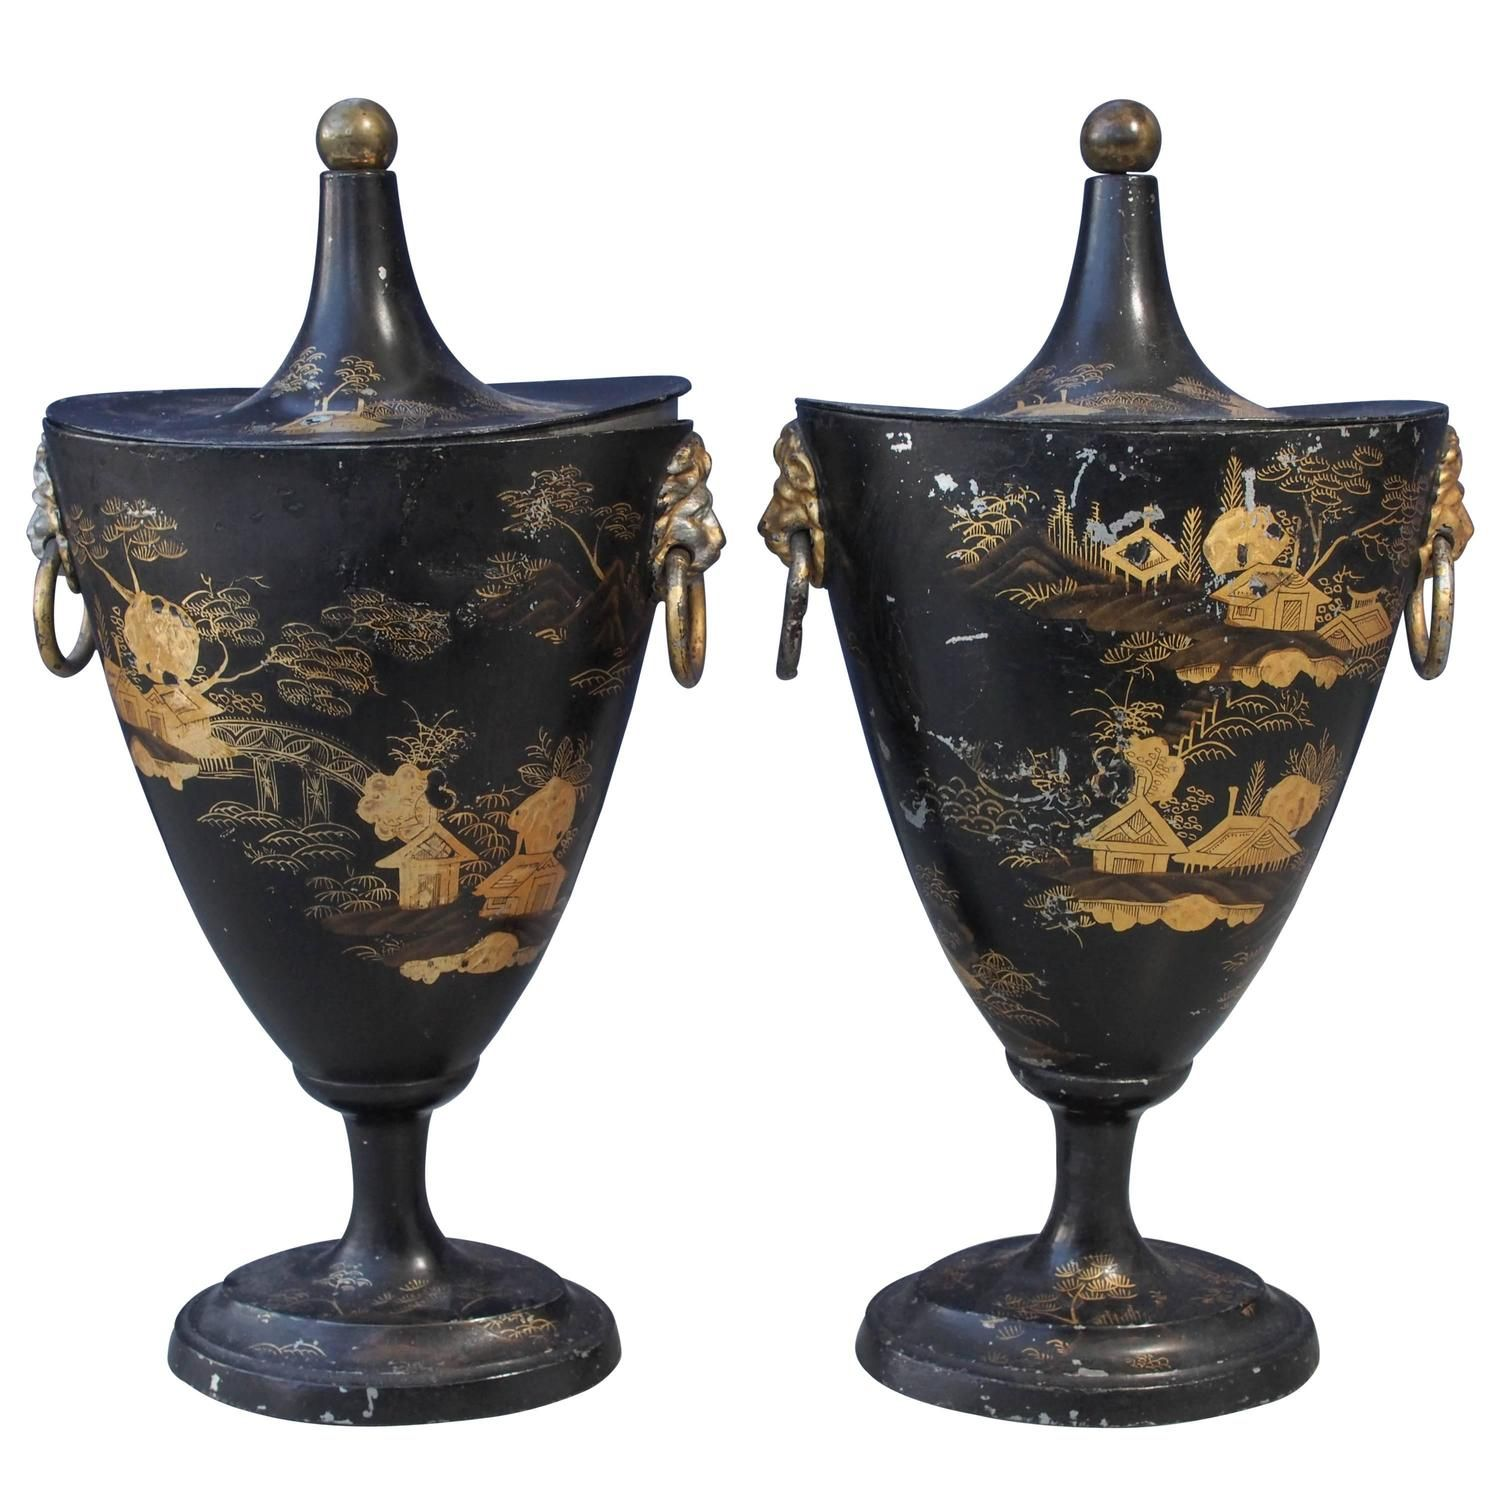 Pair of Early 19th Century Tole Piente Chestnut Urns with Chinoiserie Decoration | From a unique collection of antique and modern vases and vessels at https://www.1stdibs.com/furniture/decorative-objects/vases-vessels/